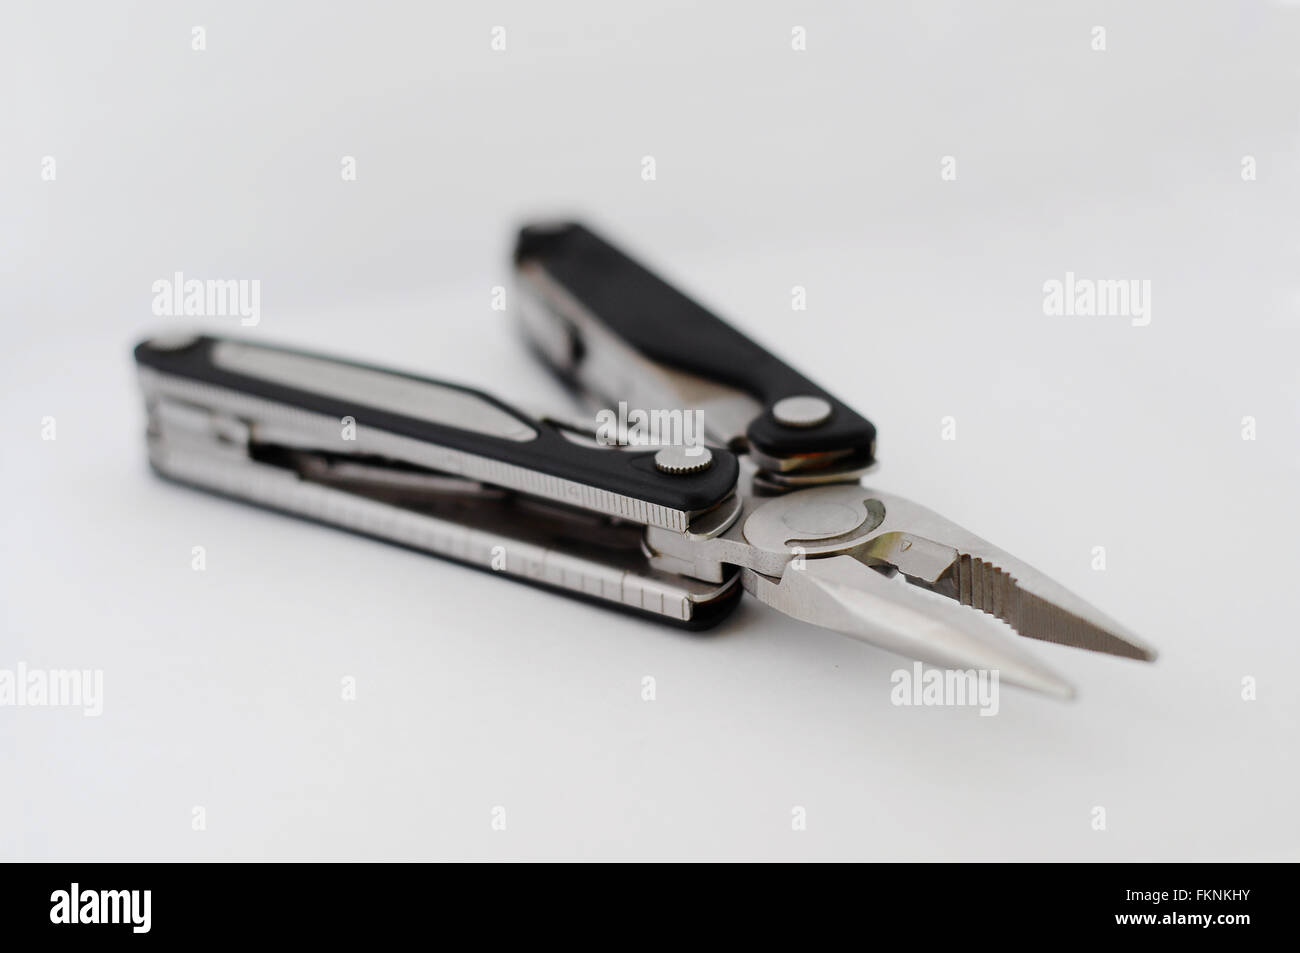 Pocket knife side view - Stock Image